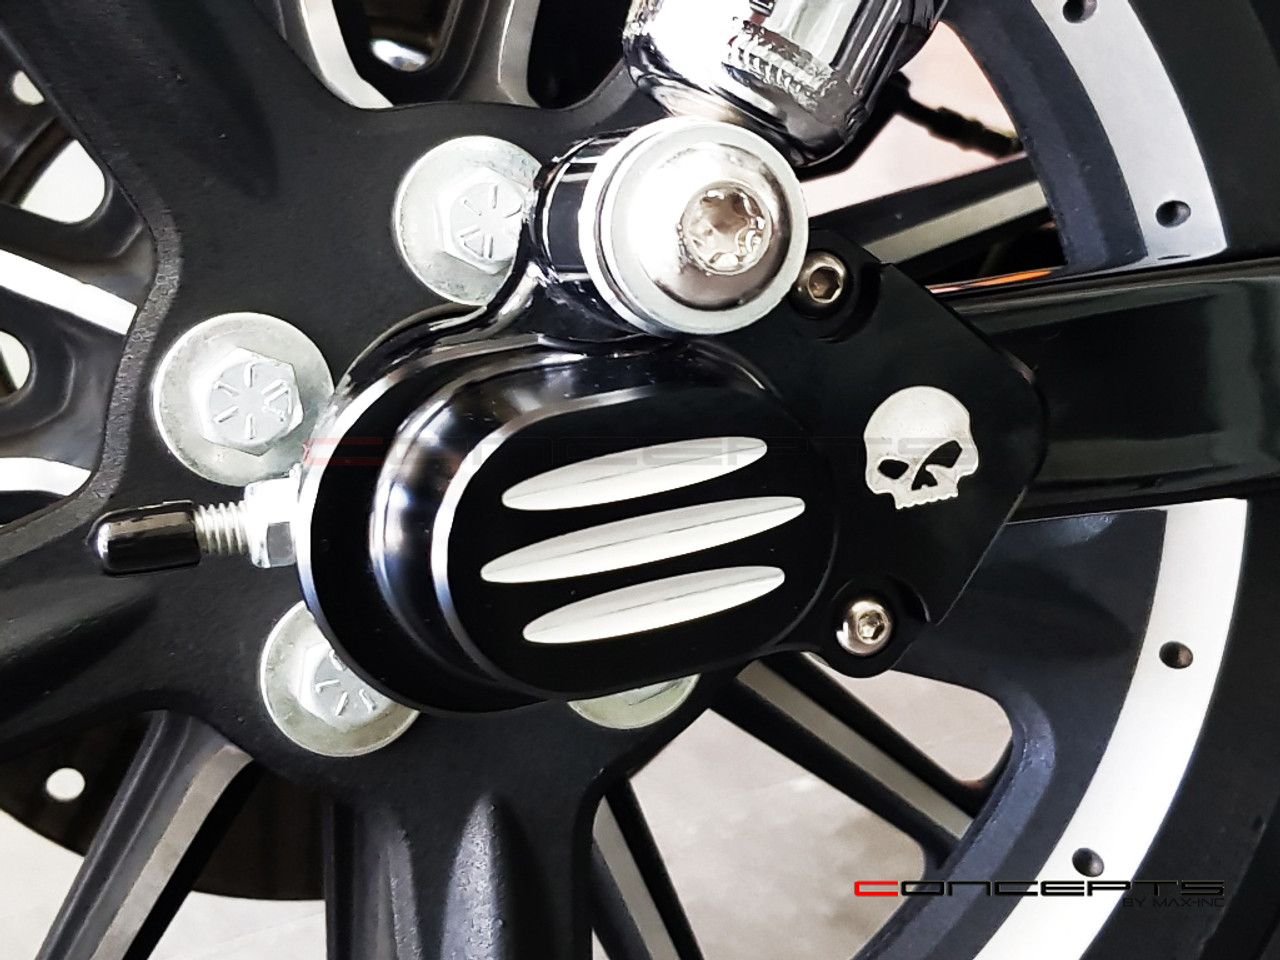 Black CNC Machined Harley Davidson Sportster Rear Axle Covers